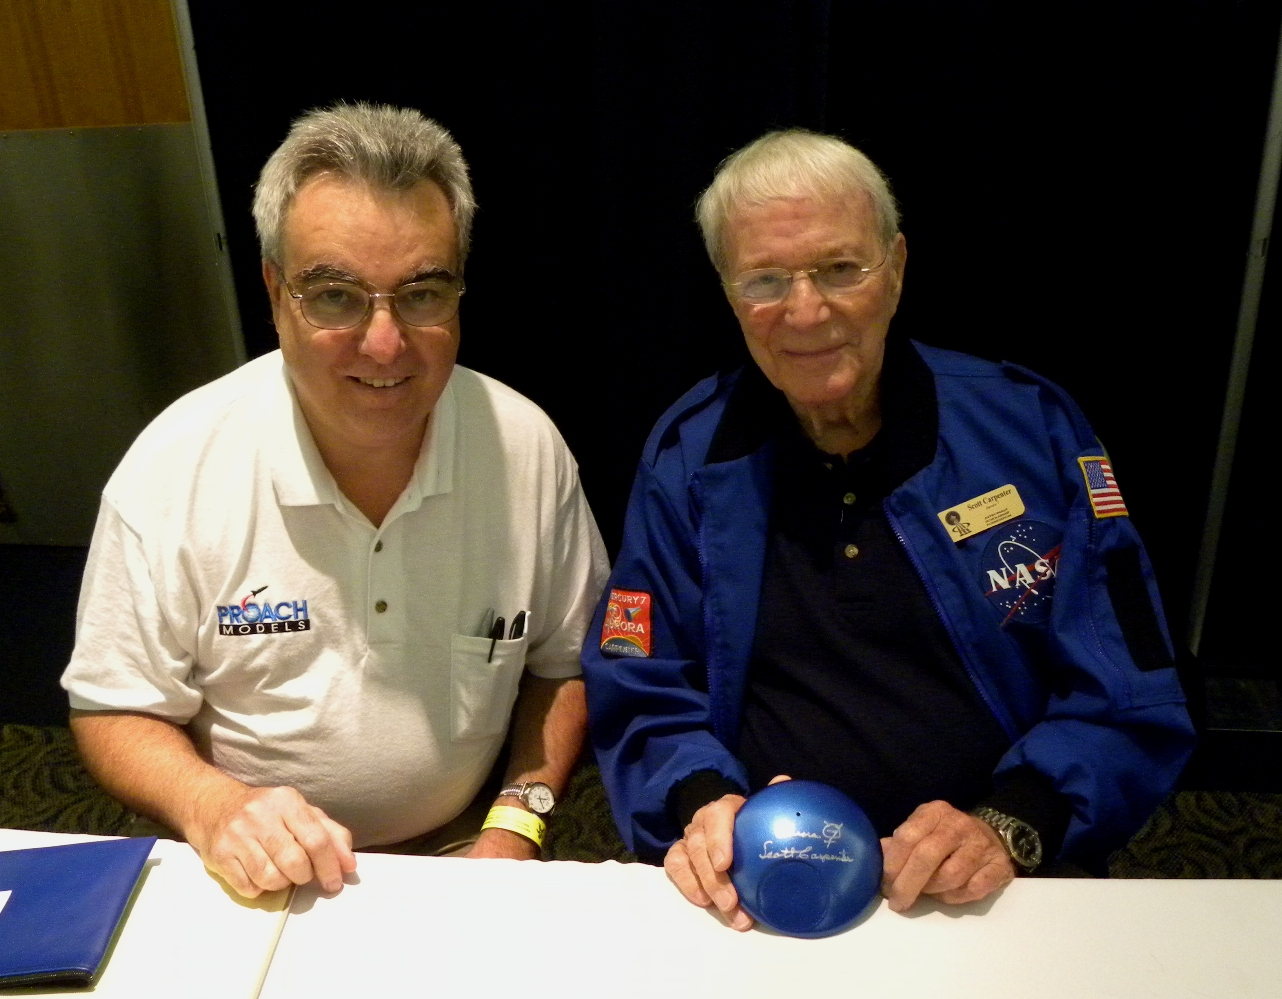 Nick with astronaut Scott Carpenter